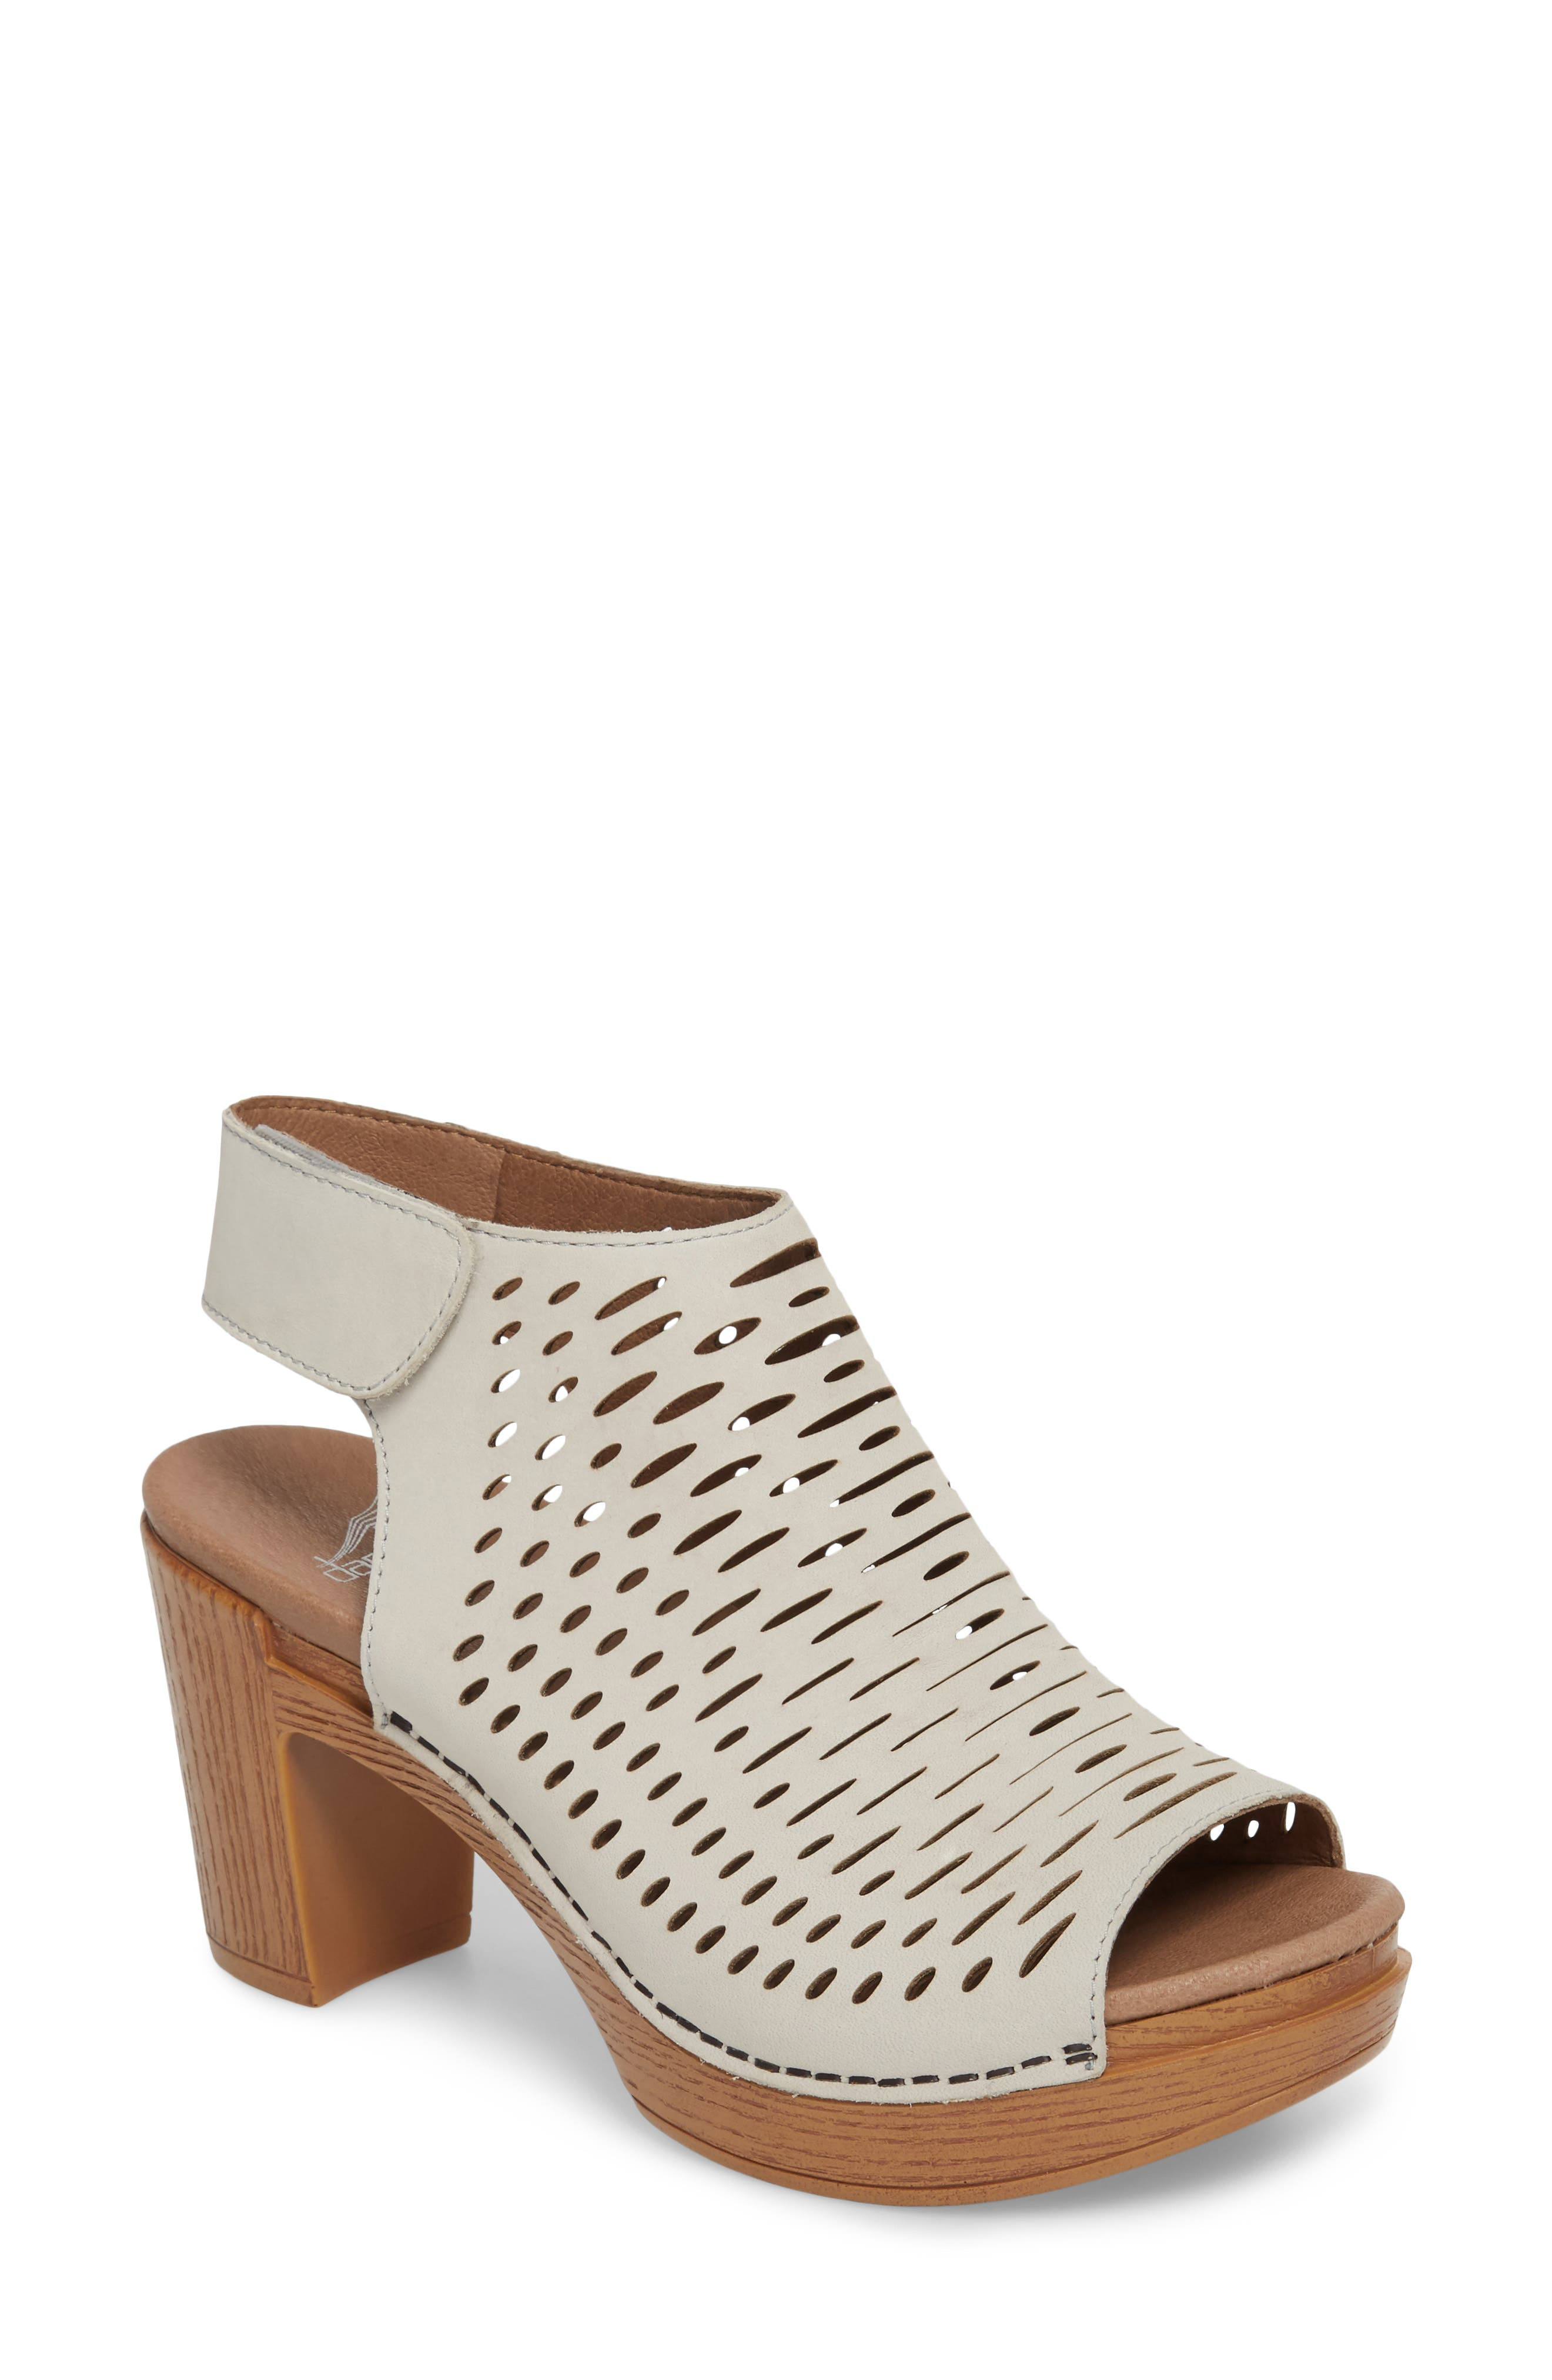 Danae Block Heel Sandal,                             Main thumbnail 1, color,                             Oyster Milled Nubuck Leather